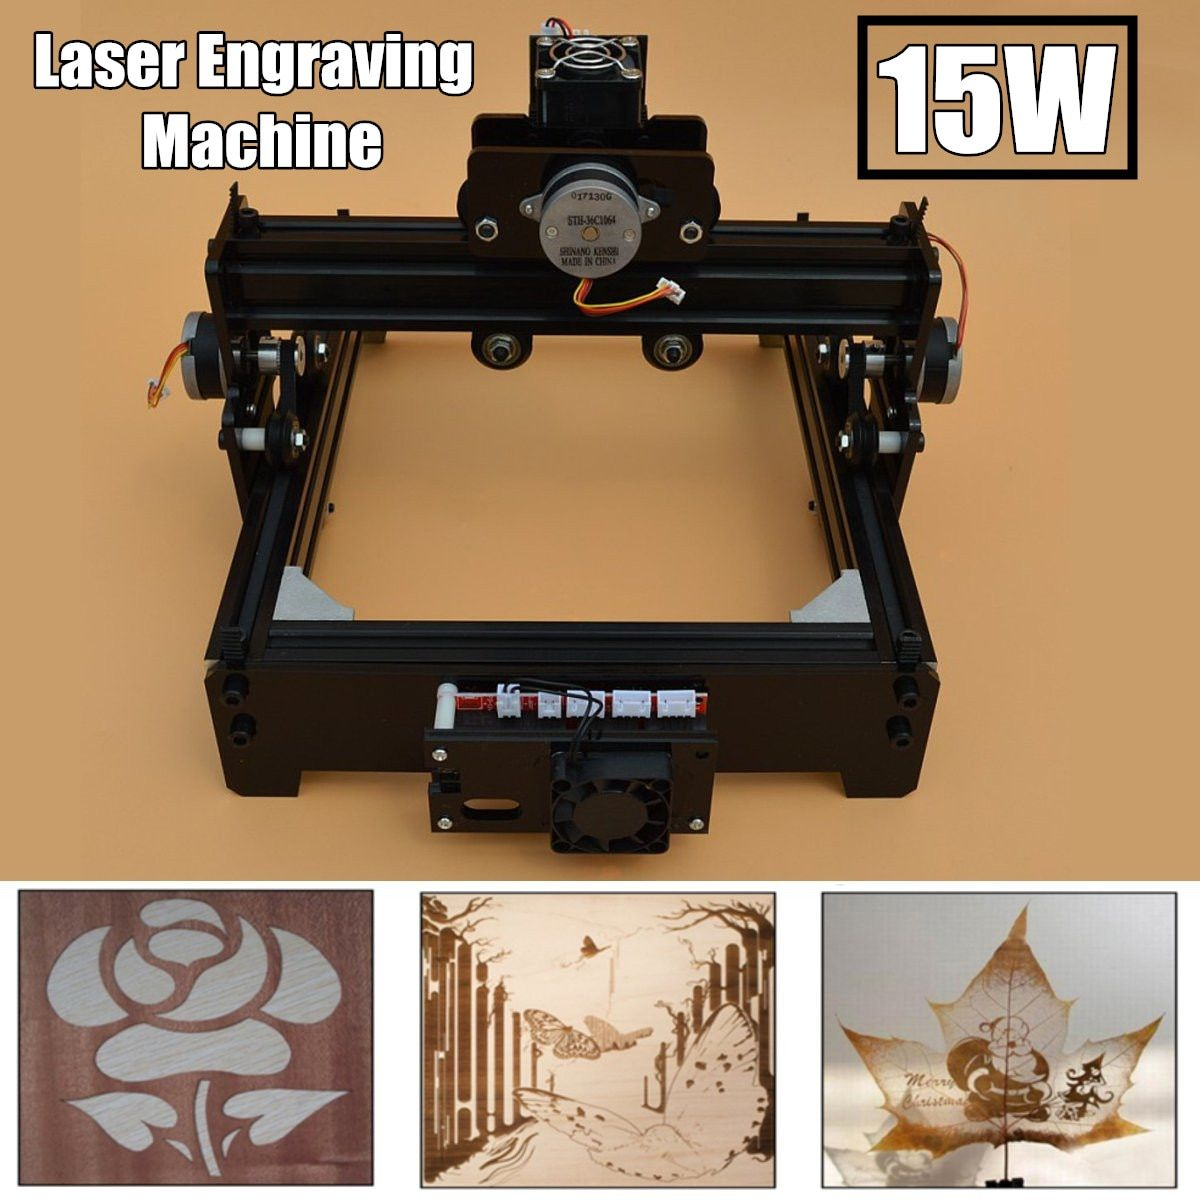 15W DIY Mini CNC Laser Engraving Machine Laser Engraving Wood Router Metal Marking Engraving 2018 Best Advanced Toys New Arrival